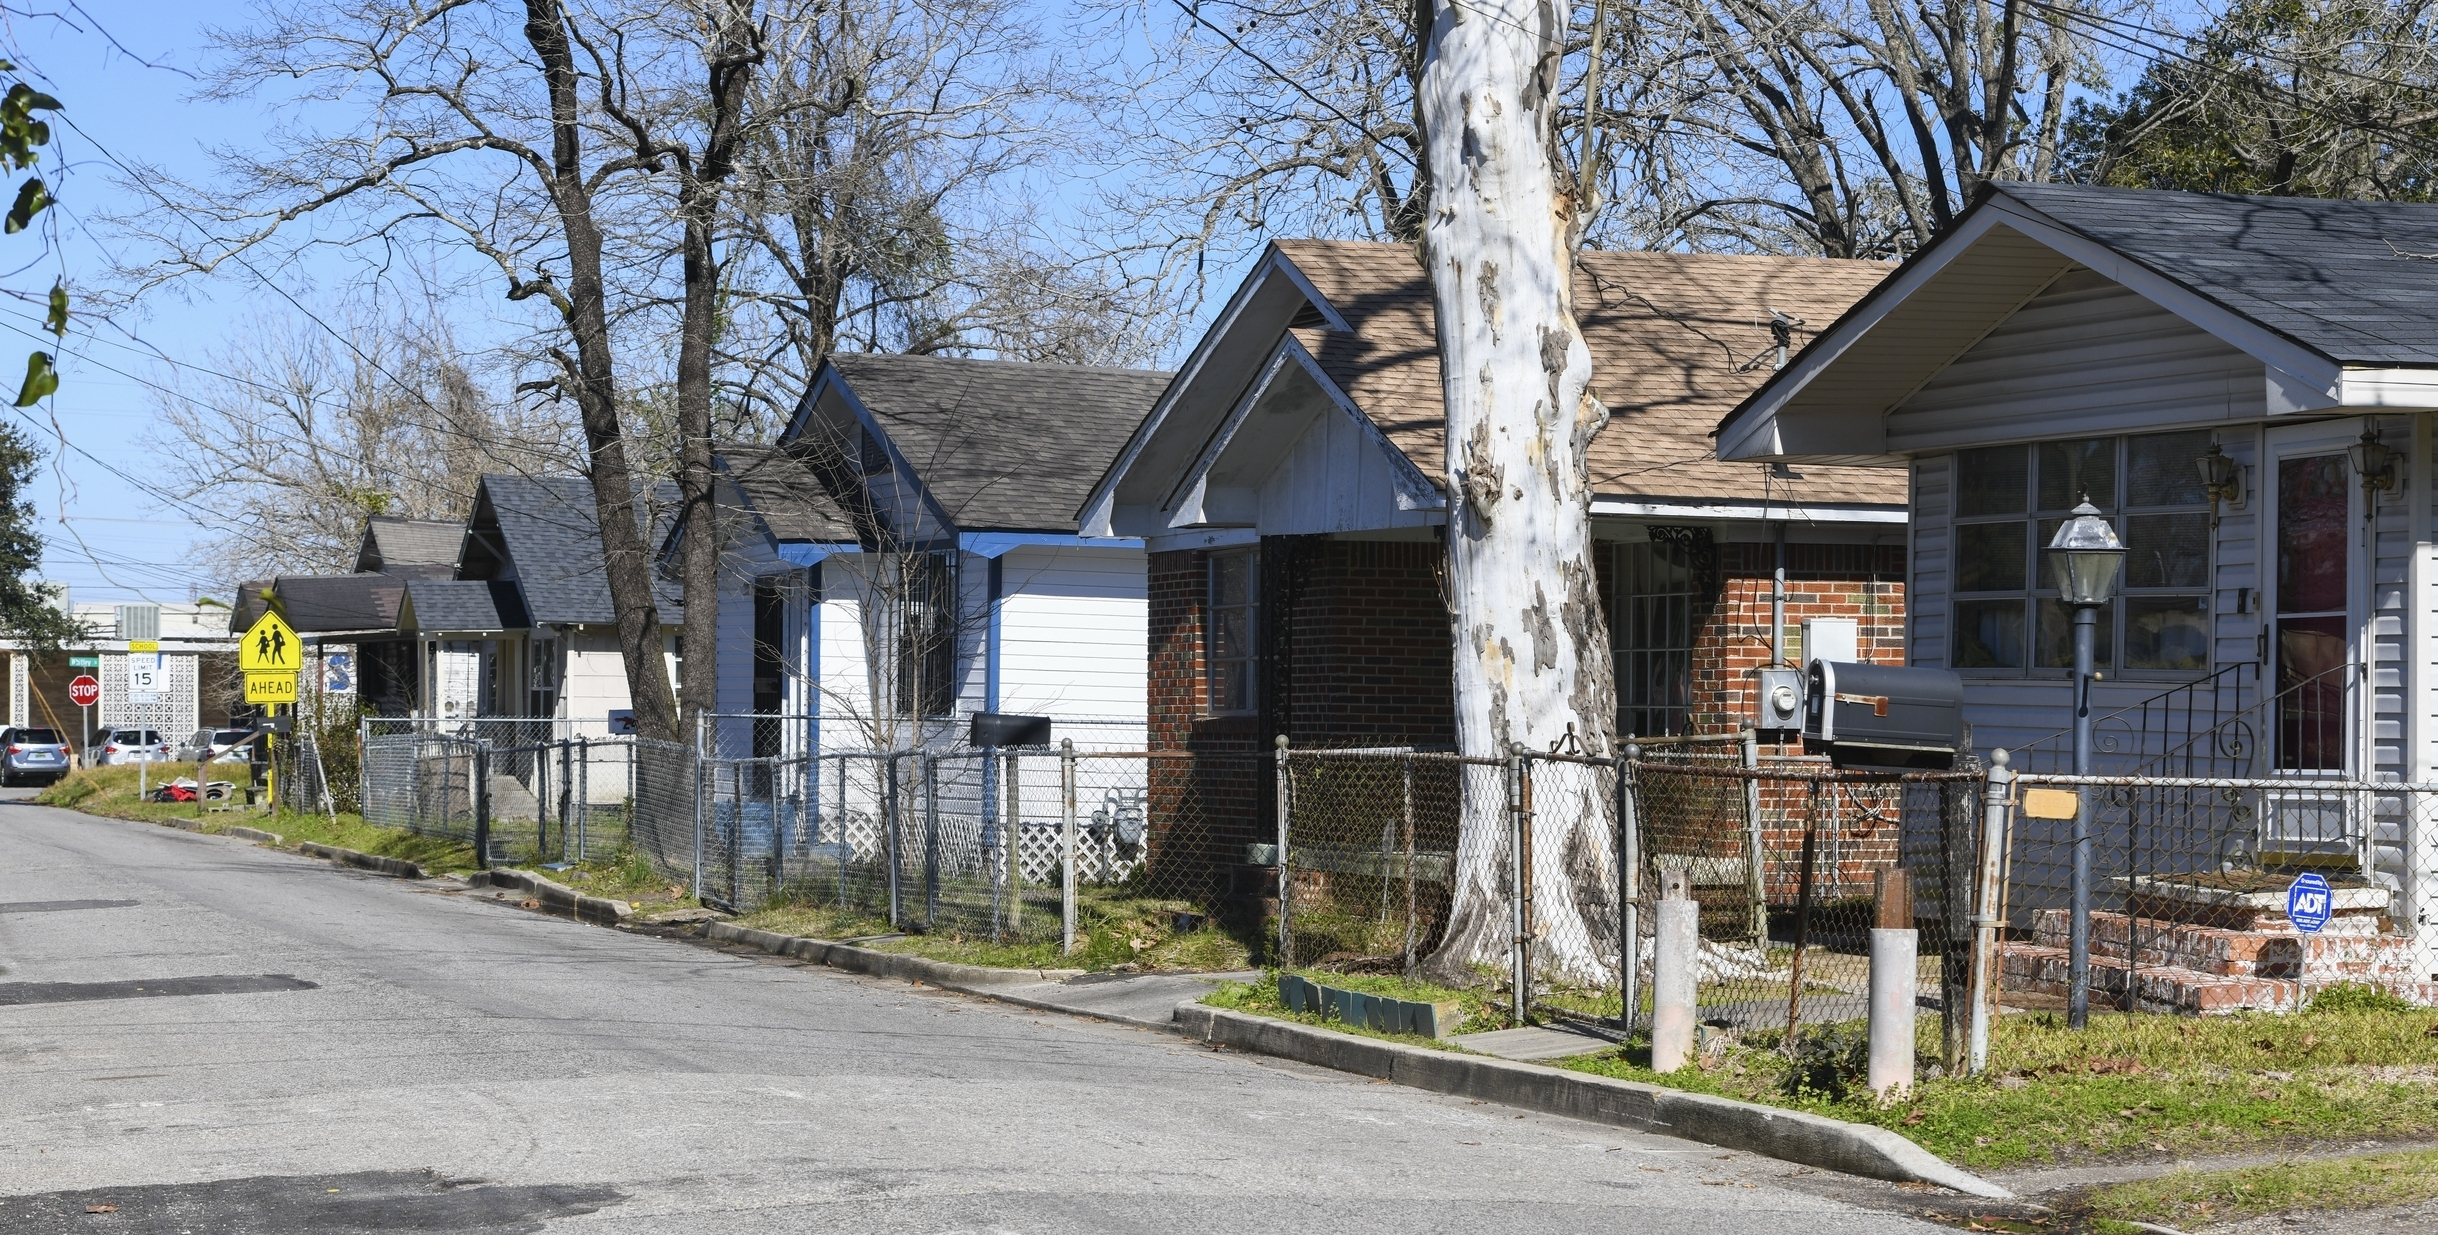 Homes line Richardson Drive in Africatown in Mobile, Ala., on Tuesday, Jan. 29, 2019. The population has suffered greatly in recent years, leaving much of the area in disrepair. Established by the last boatload of Africans abducted into slavery and shipped to the United States just before the Civil War, the coastal Alabama community now shows scarcely a trace of its founders. (AP Photo/Julie Bennett)